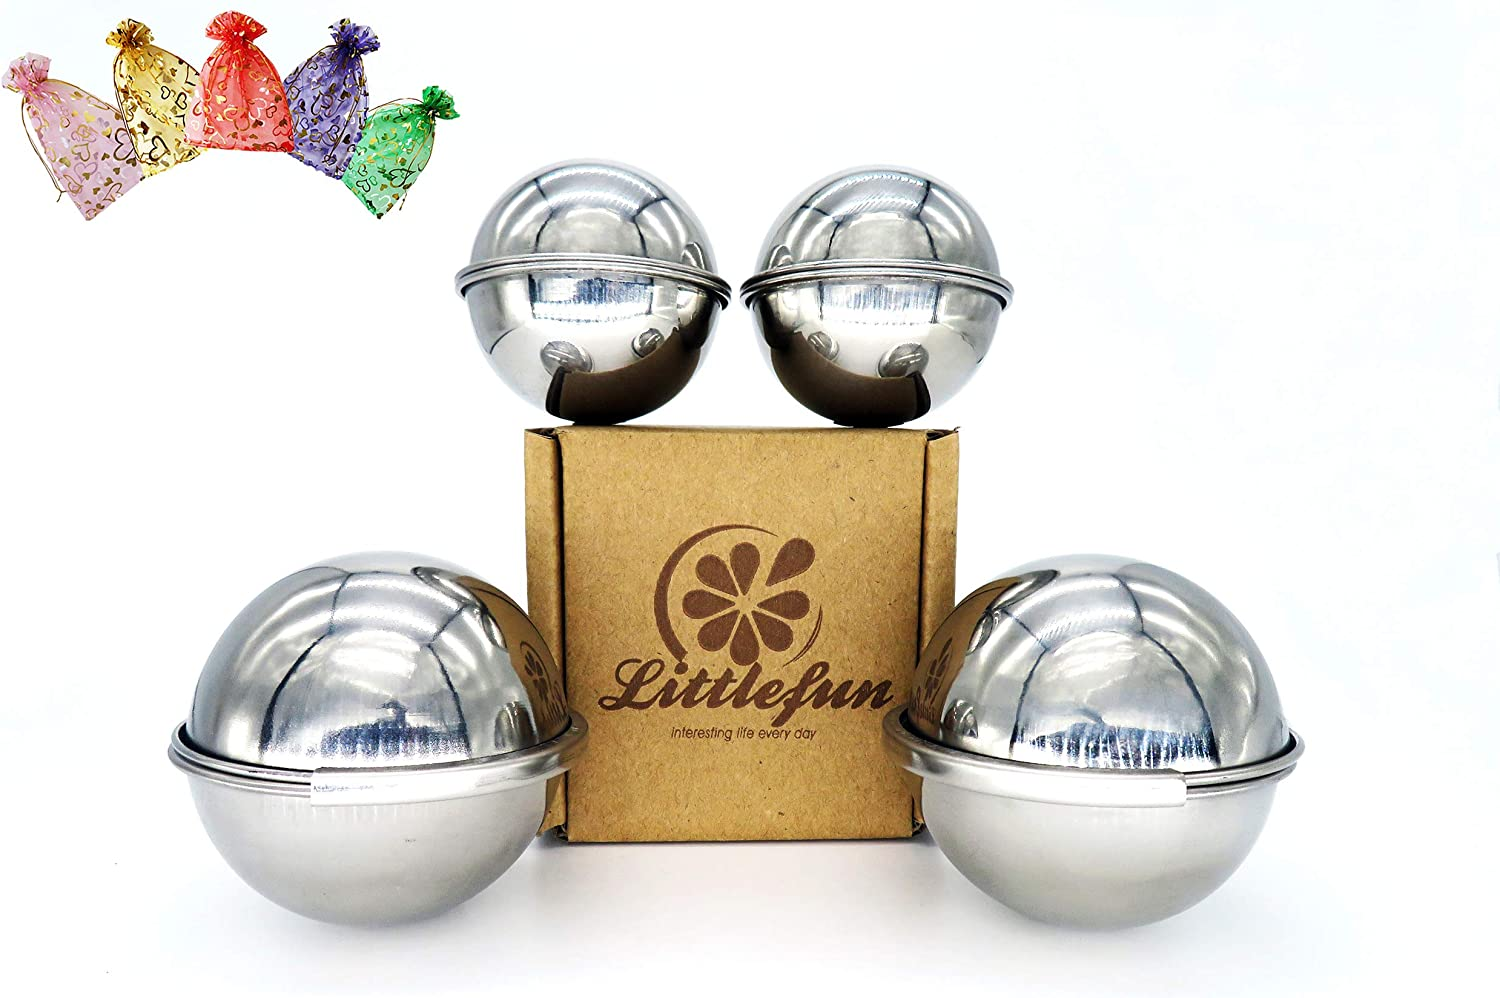 LITTLEFUN 304 Stainless Steel Bath Bomb Mold with 2 Sizes 4 Sets 8 Pieces Hemispheres for Making Your DIY Craft Soap ?Unique Design Latch for Large Mold ? Mix Your Own Recipes ? Free 2 Gift Bags